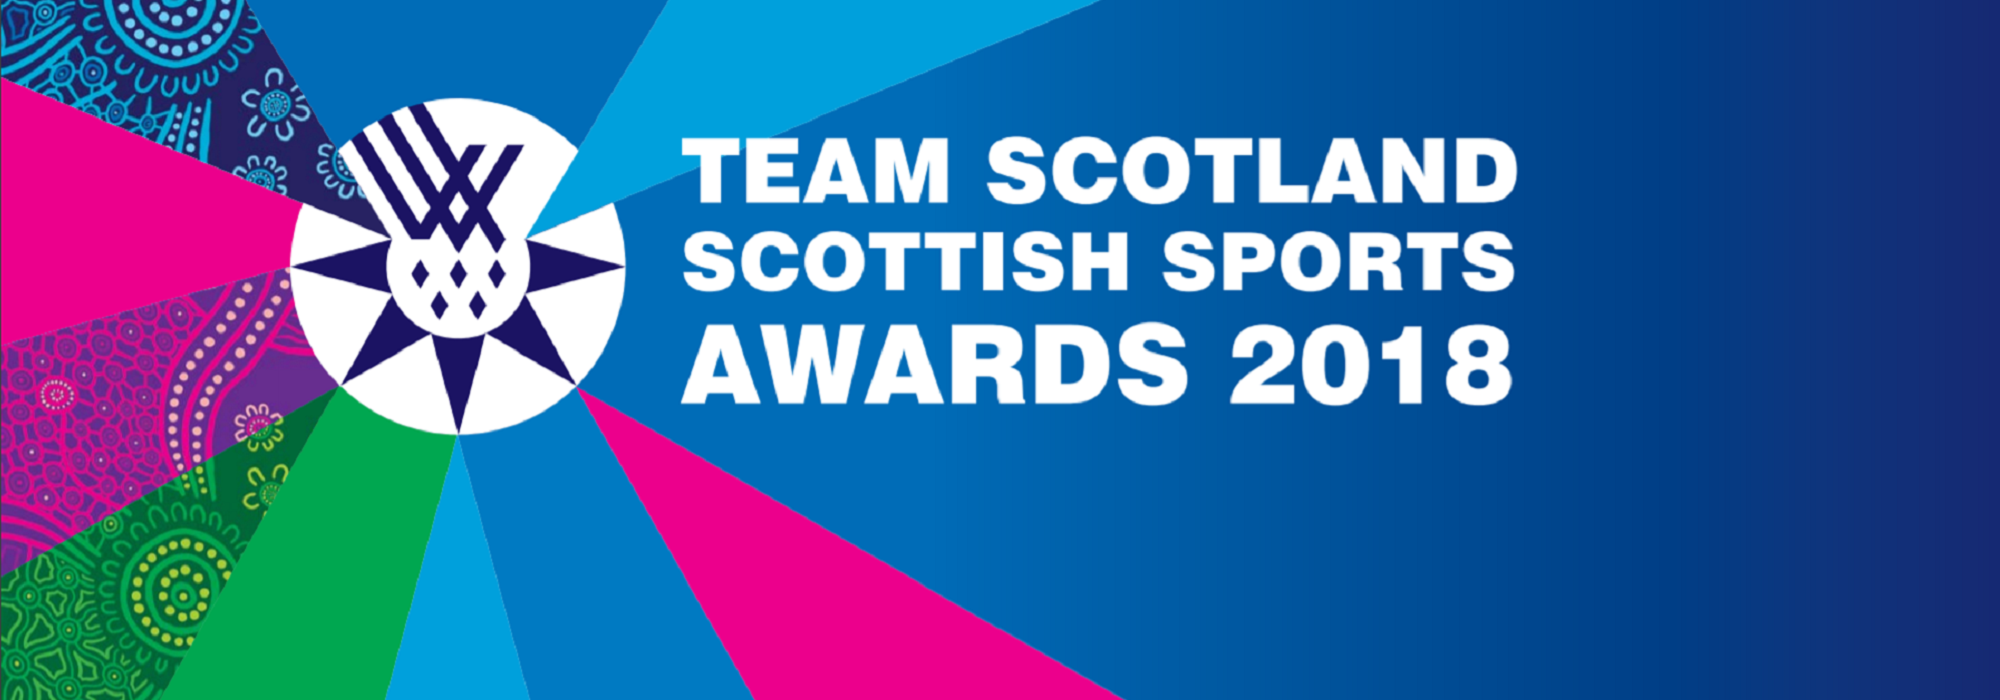 Team Scotland Awards Finalists Revealed Image